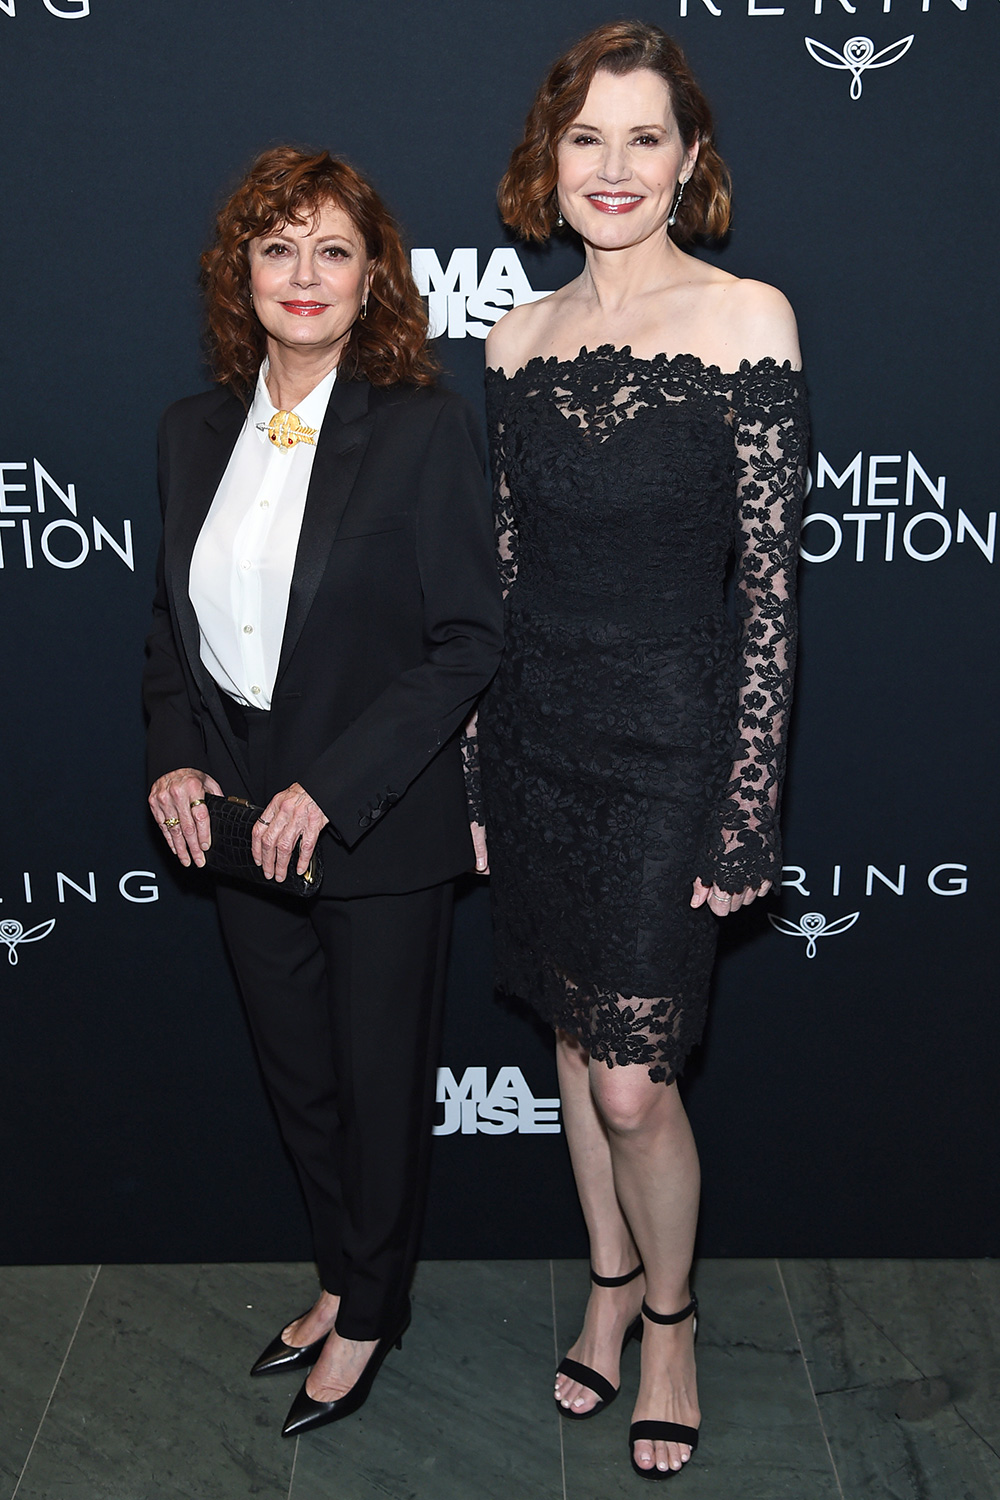 """Susan Sarandon and Geena Davis attend the screening of """"Thelma & Louise"""" Women In Motion at Museum of Modern Art on January 28, 2020 in New York City"""